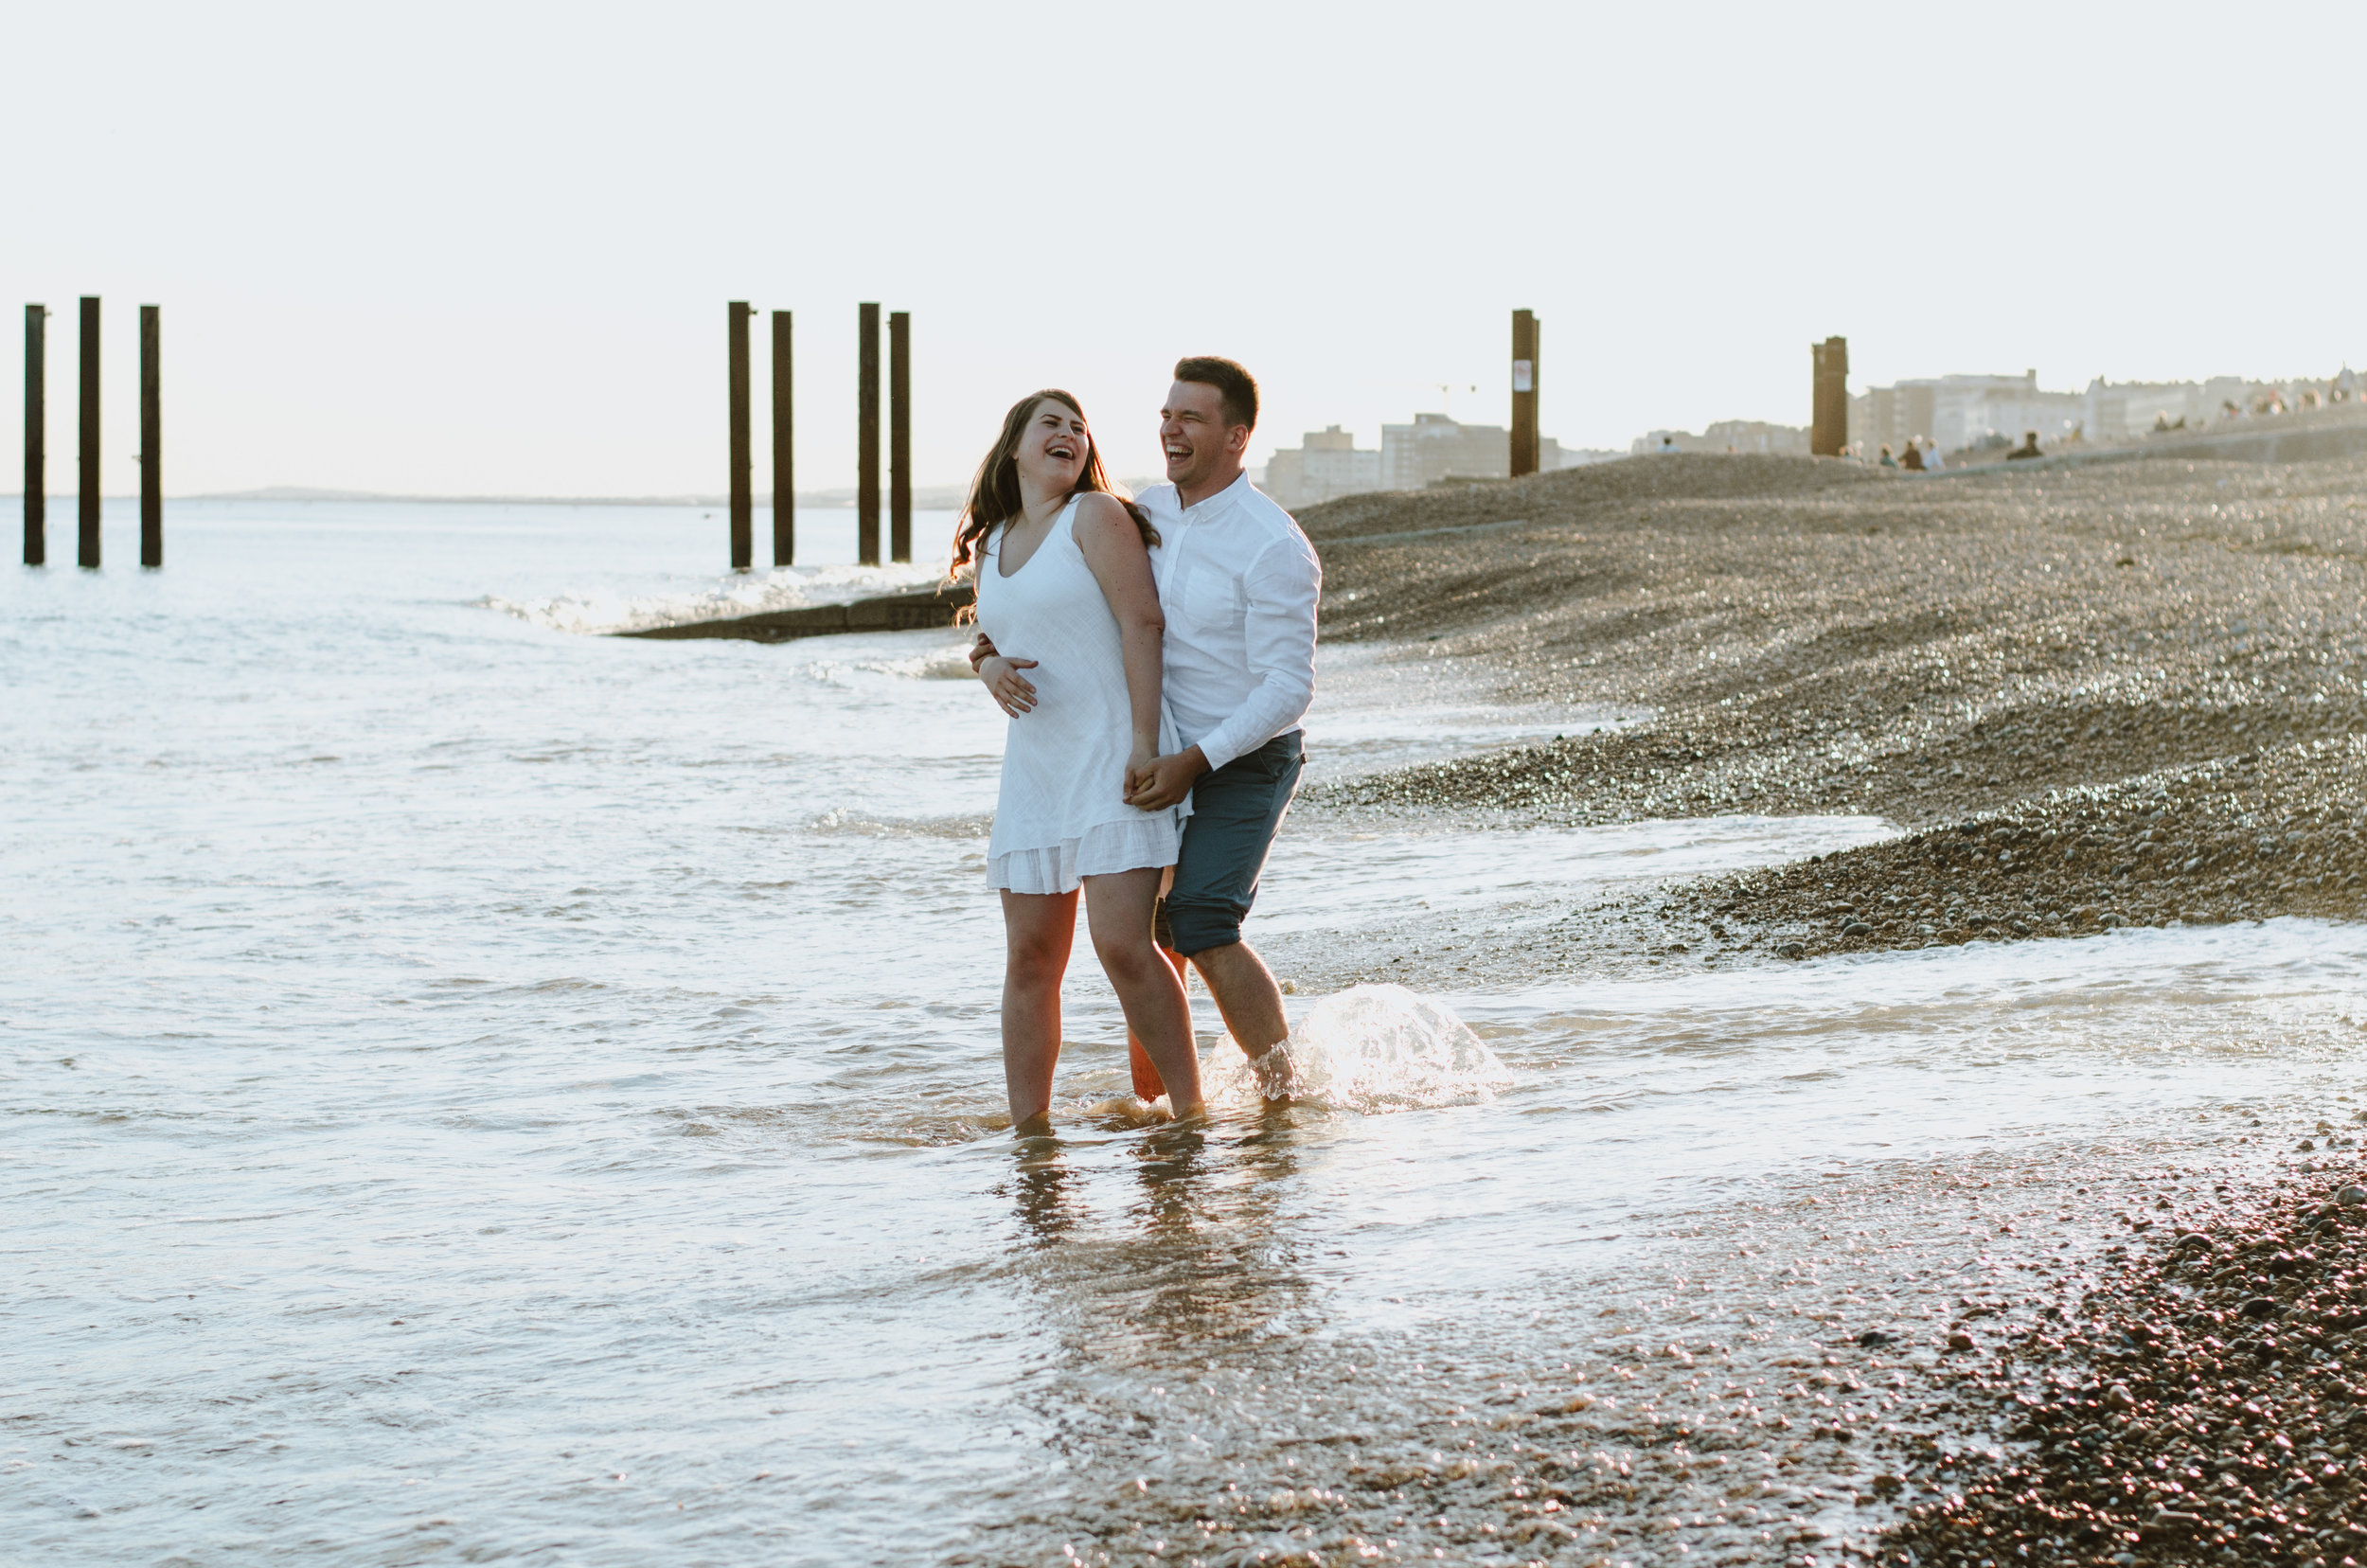 Ieva & Julius - Brighton Beach - Couple Session - Aiste Saulyte Photography-14.jpg